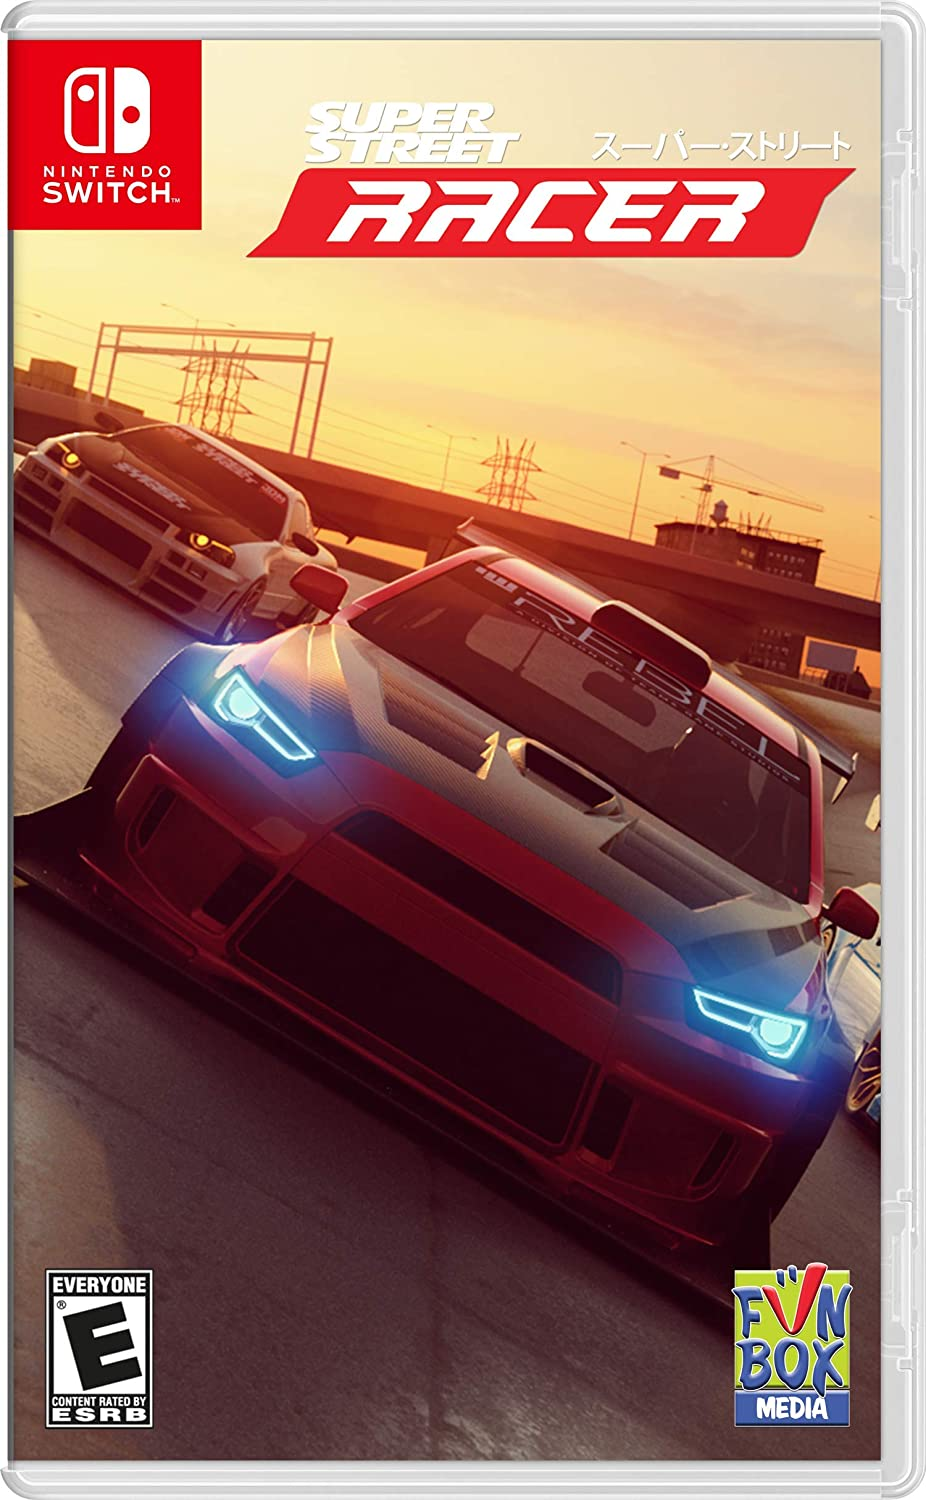 Super Street Racer for Nintendo Switch [USA]: Amazon.es: Gs2 Games ...